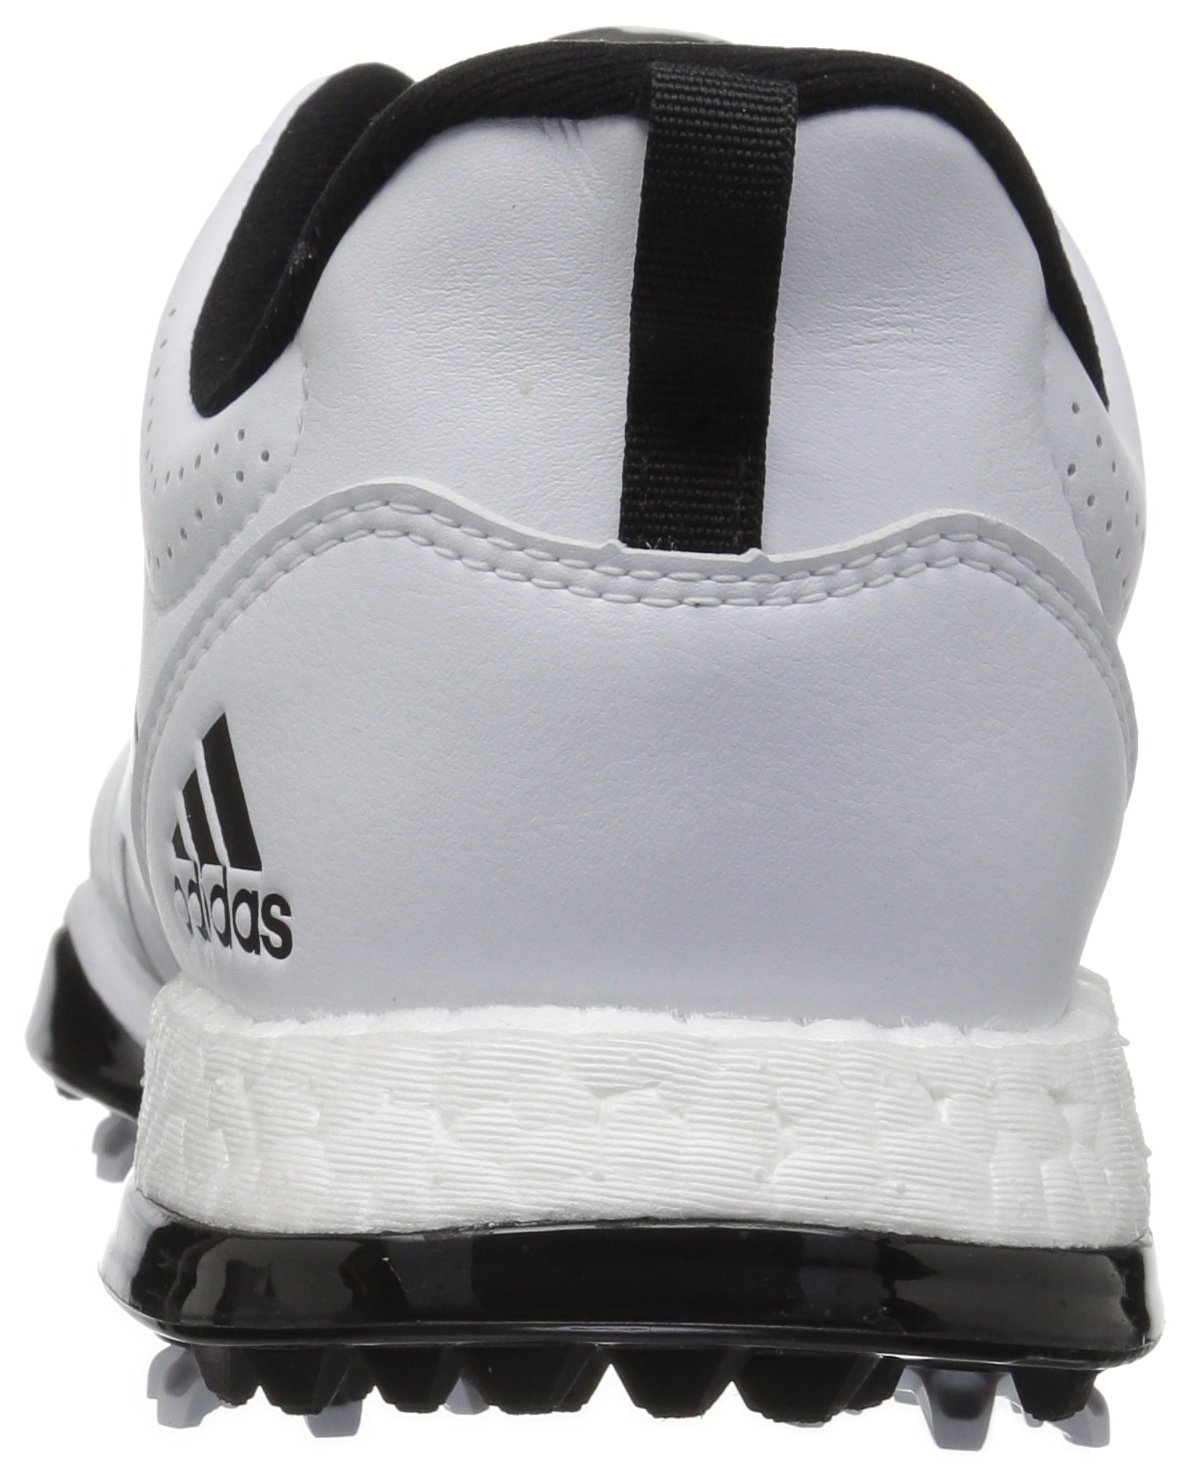 adidas Women's W Shoe Adipower Boost Boa Golf Shoe W B071SGKH72 5 B(M) US|White/Black 06a886